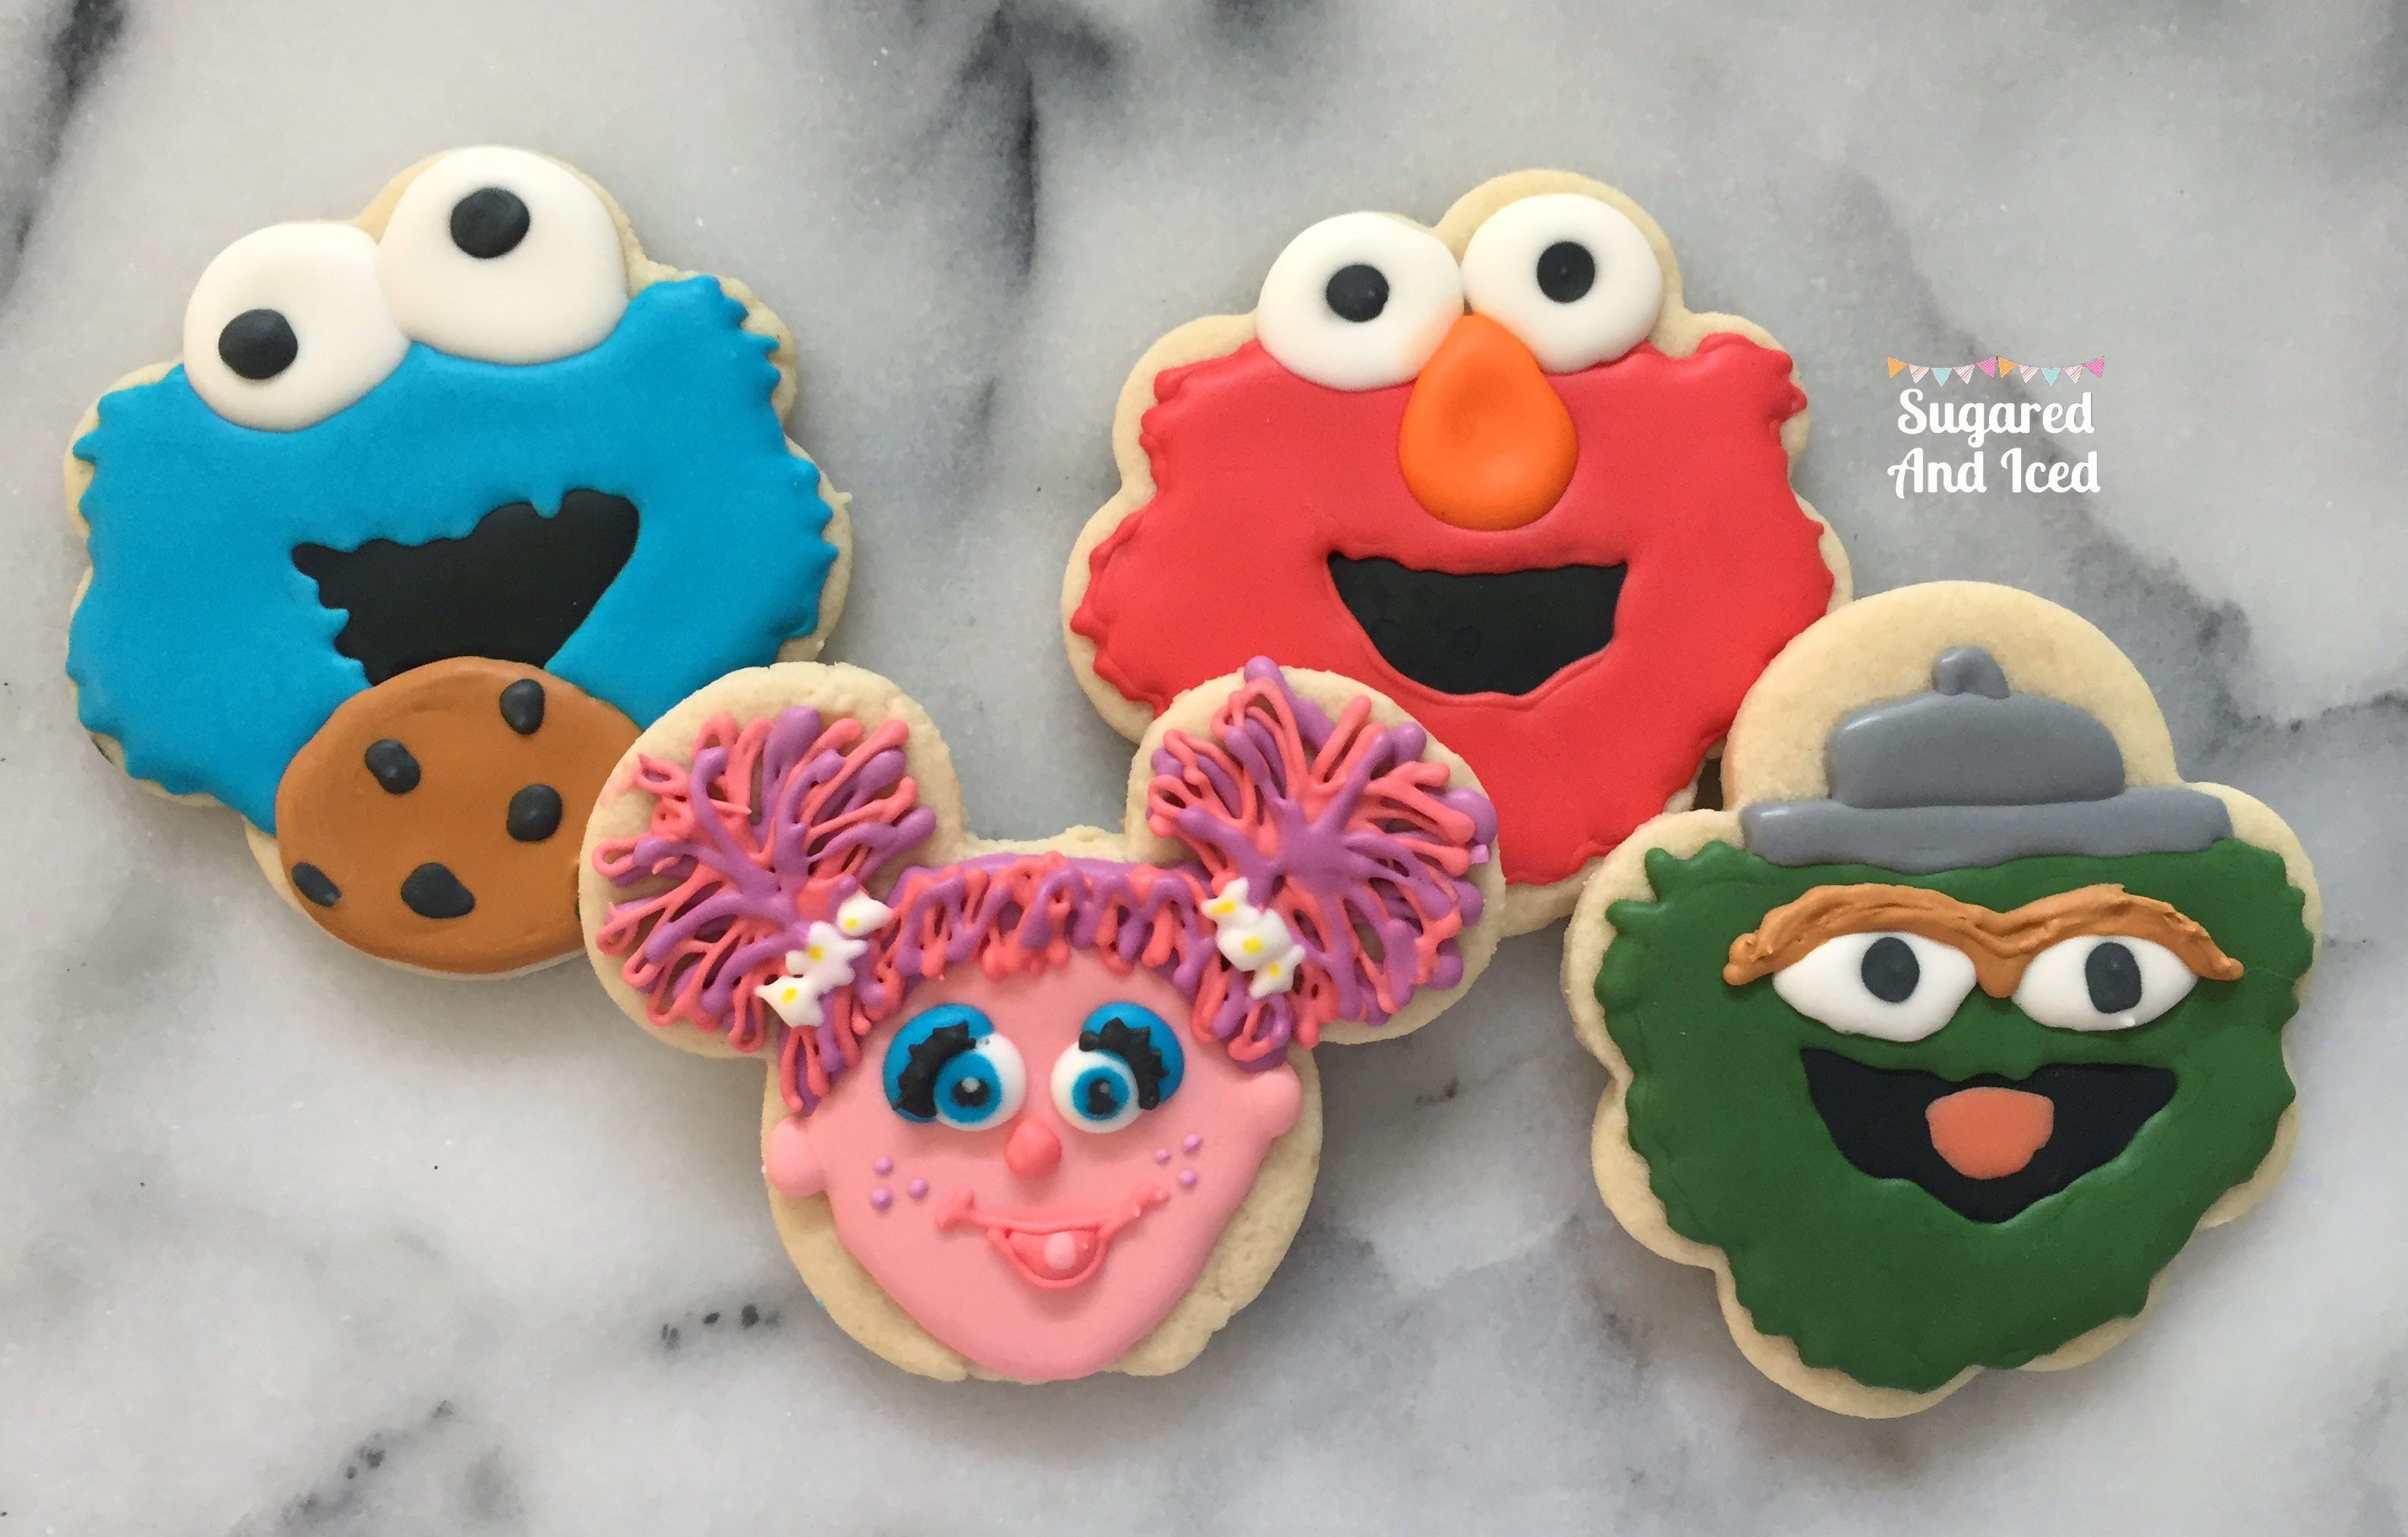 Sesame Street: Elmo, Cookie Monster, Abby Cadabby, Oscar the Grouch